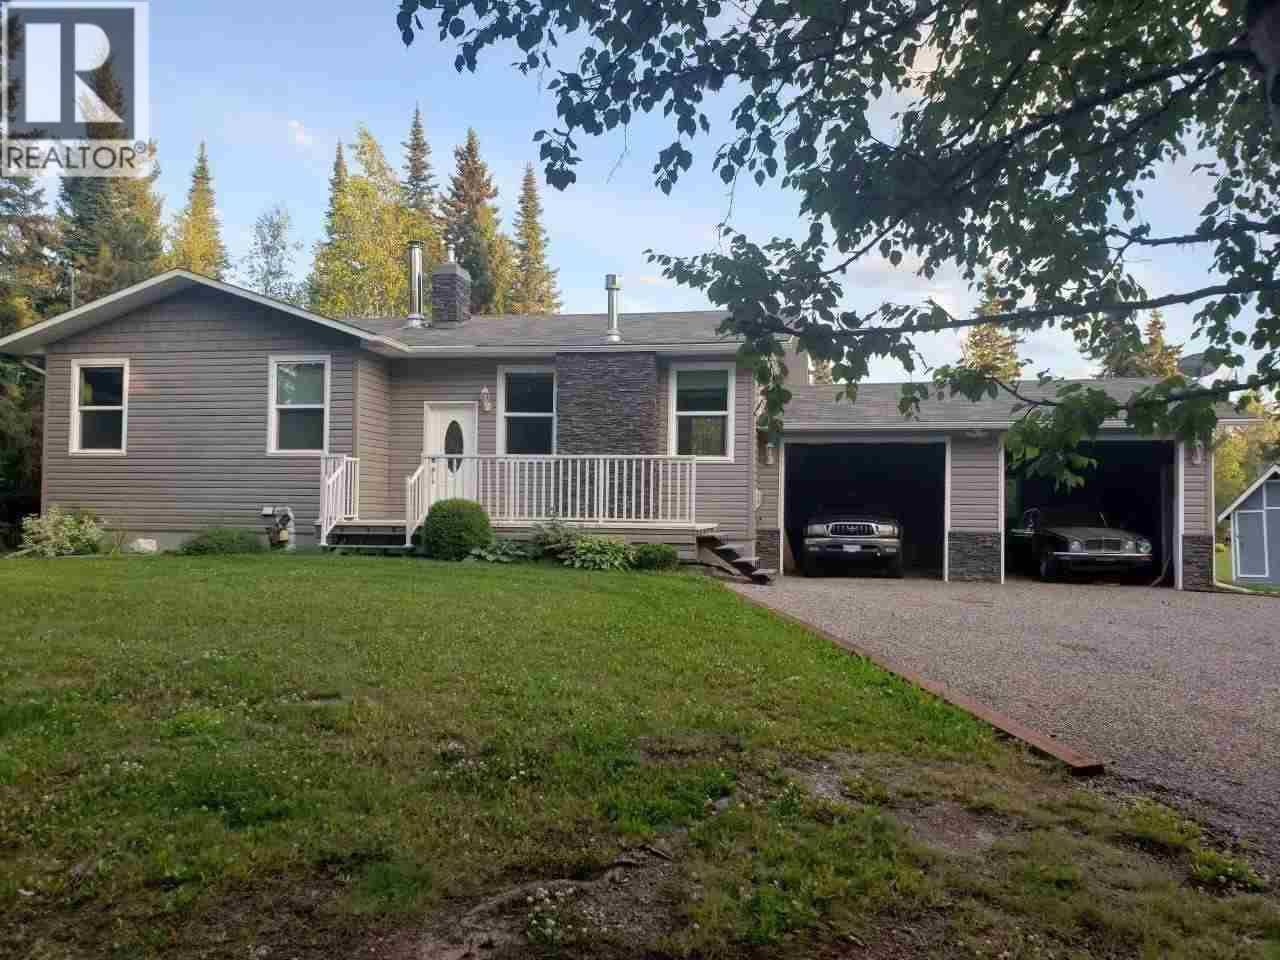 House for sale at 3875 Sunshine Cres Prince George British Columbia - MLS: R2437318